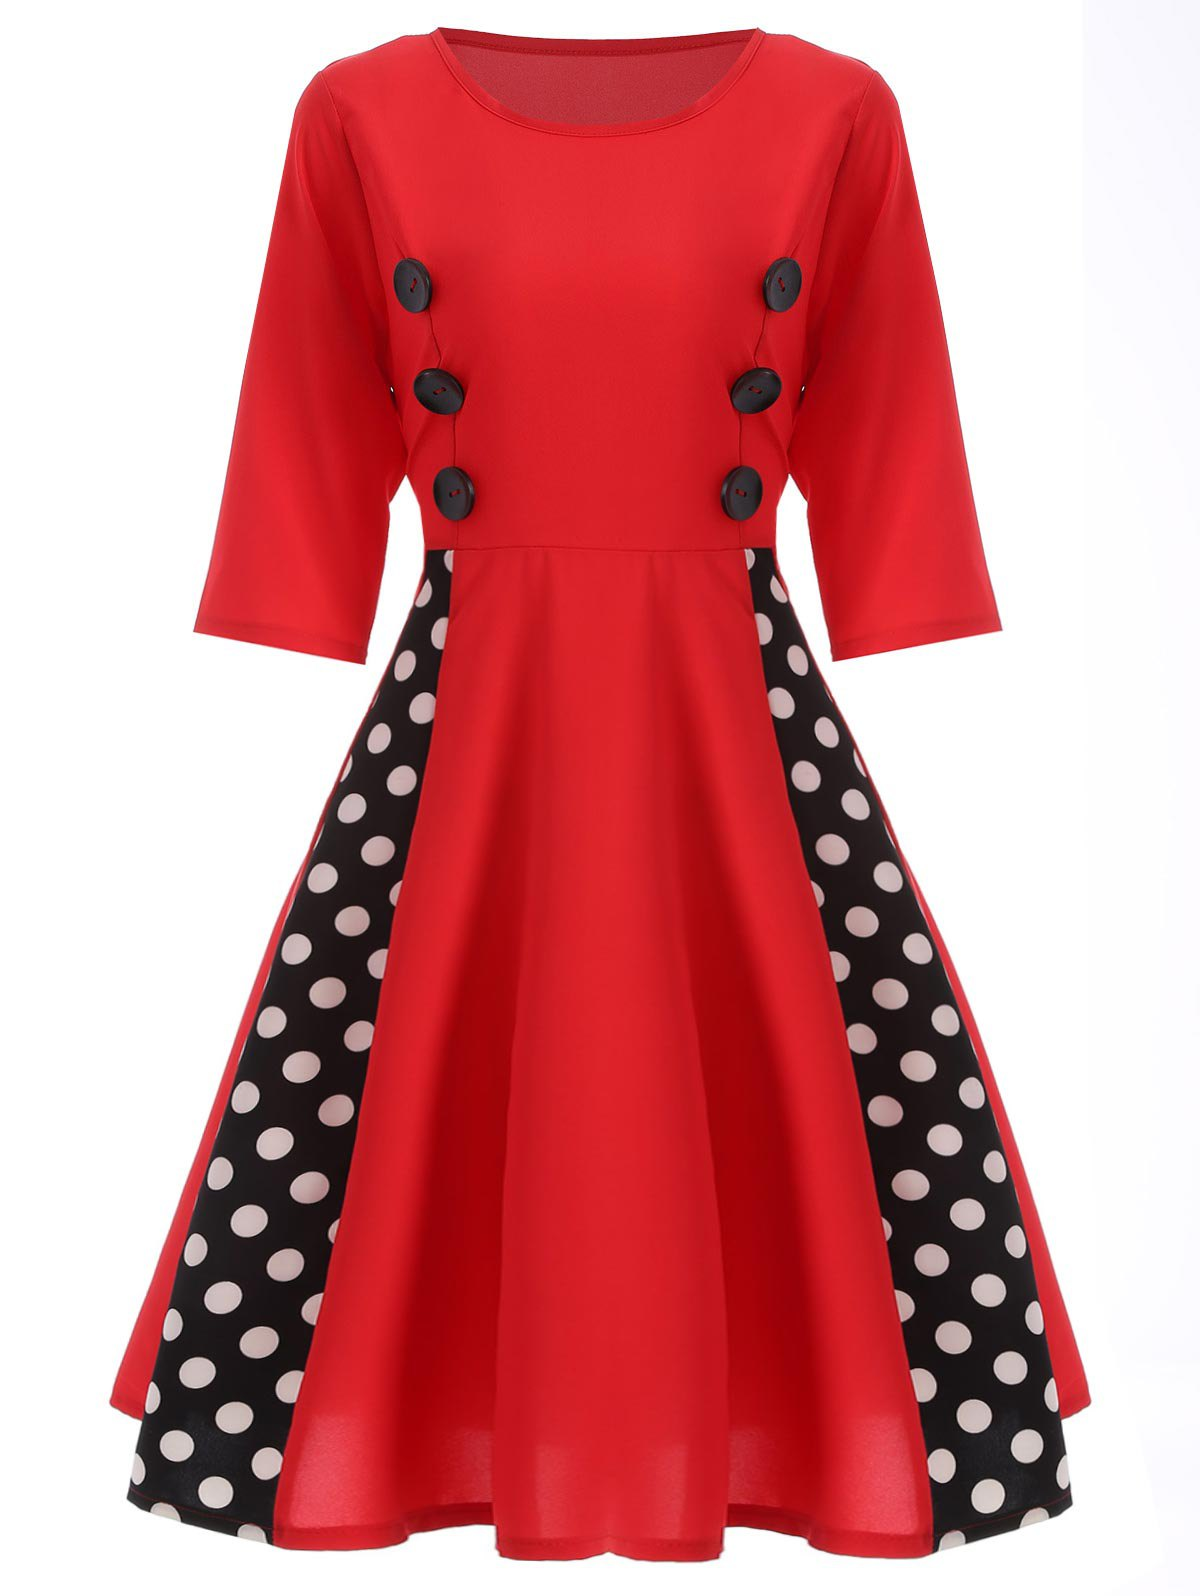 Polka Dot Insert Swing Dress - RED M